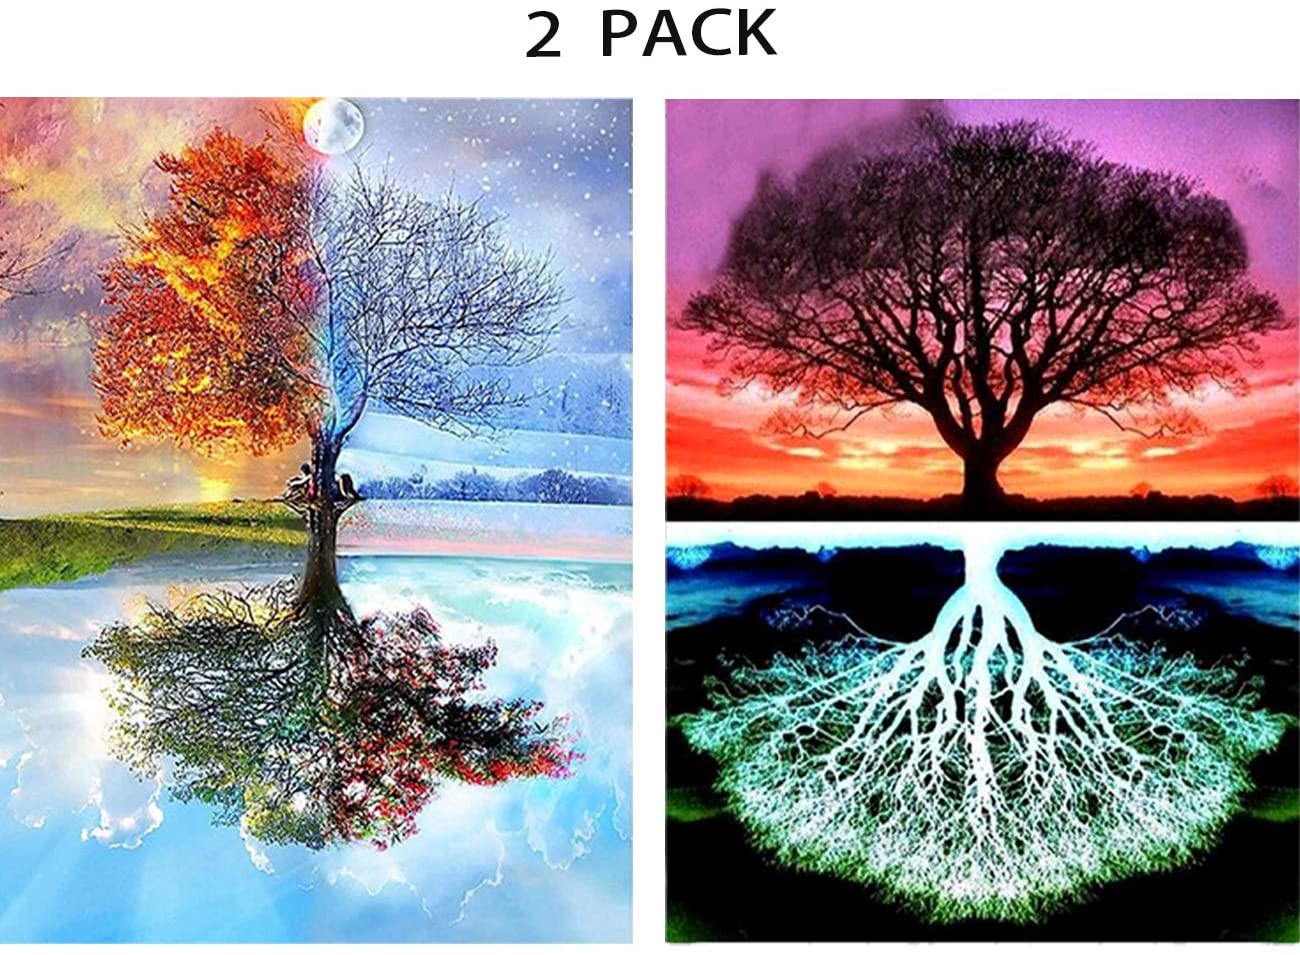 5D Diamond Art Kits for Adults, 2 Pack DIY Diamond Painting Dotz Full Drill Embroidery Craft Home Decor, Four Seasons Tree and Tree of Life (11.8 x 15.7 inch)